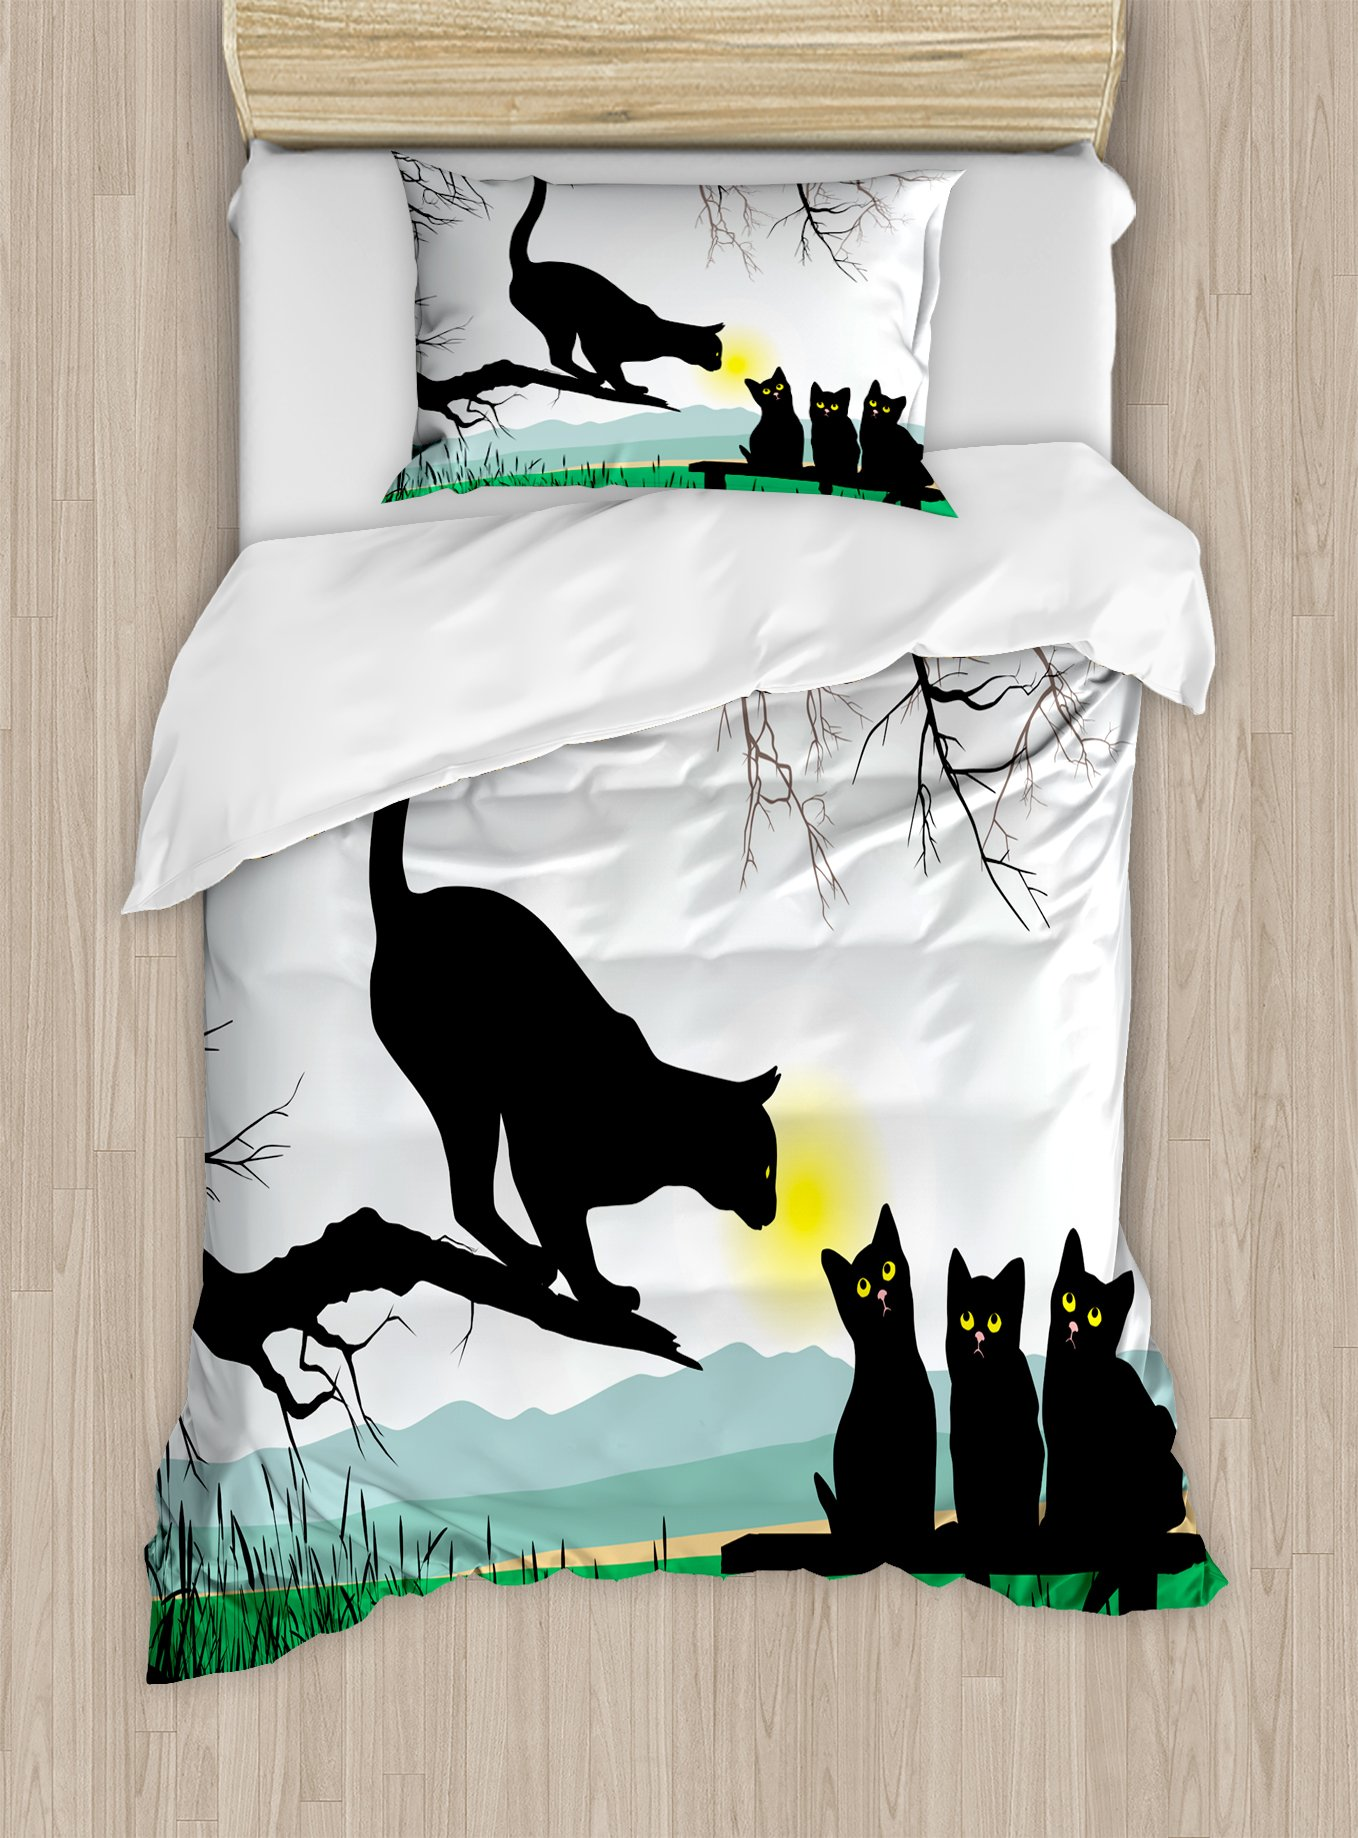 Ambesonne Cat Duvet Cover Set Twin Size, Mother Cat on Tree Branch and Baby Kittens in Park Best Friends I Love My Kitty Graphic, Decorative 2 Piece Bedding Set with 1 Pillow Sham, Multi